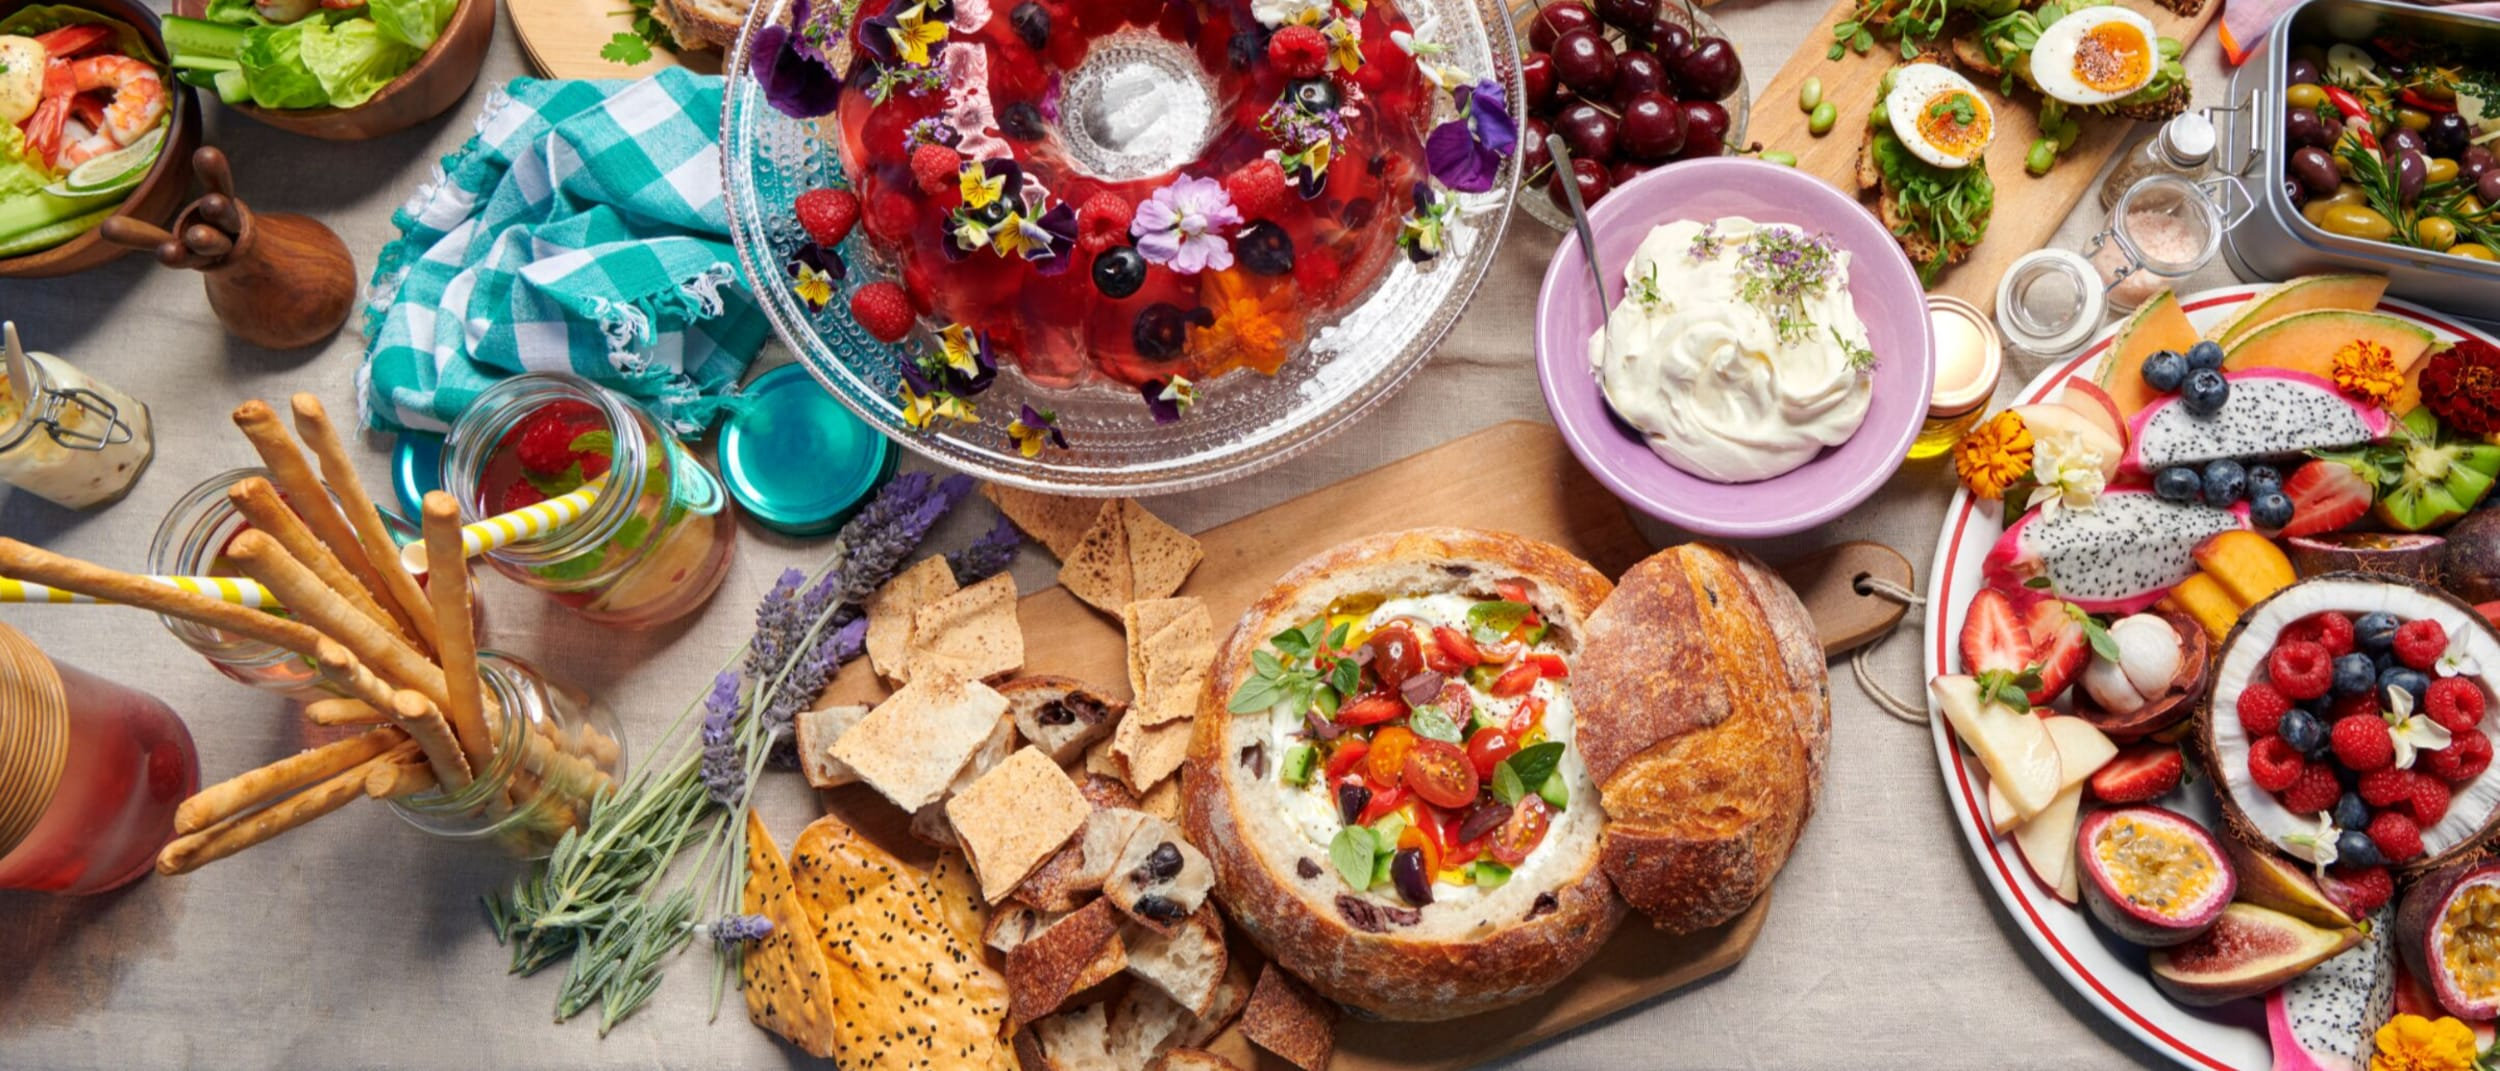 Make this Tzatziki cob loaf with Greek salad garnish